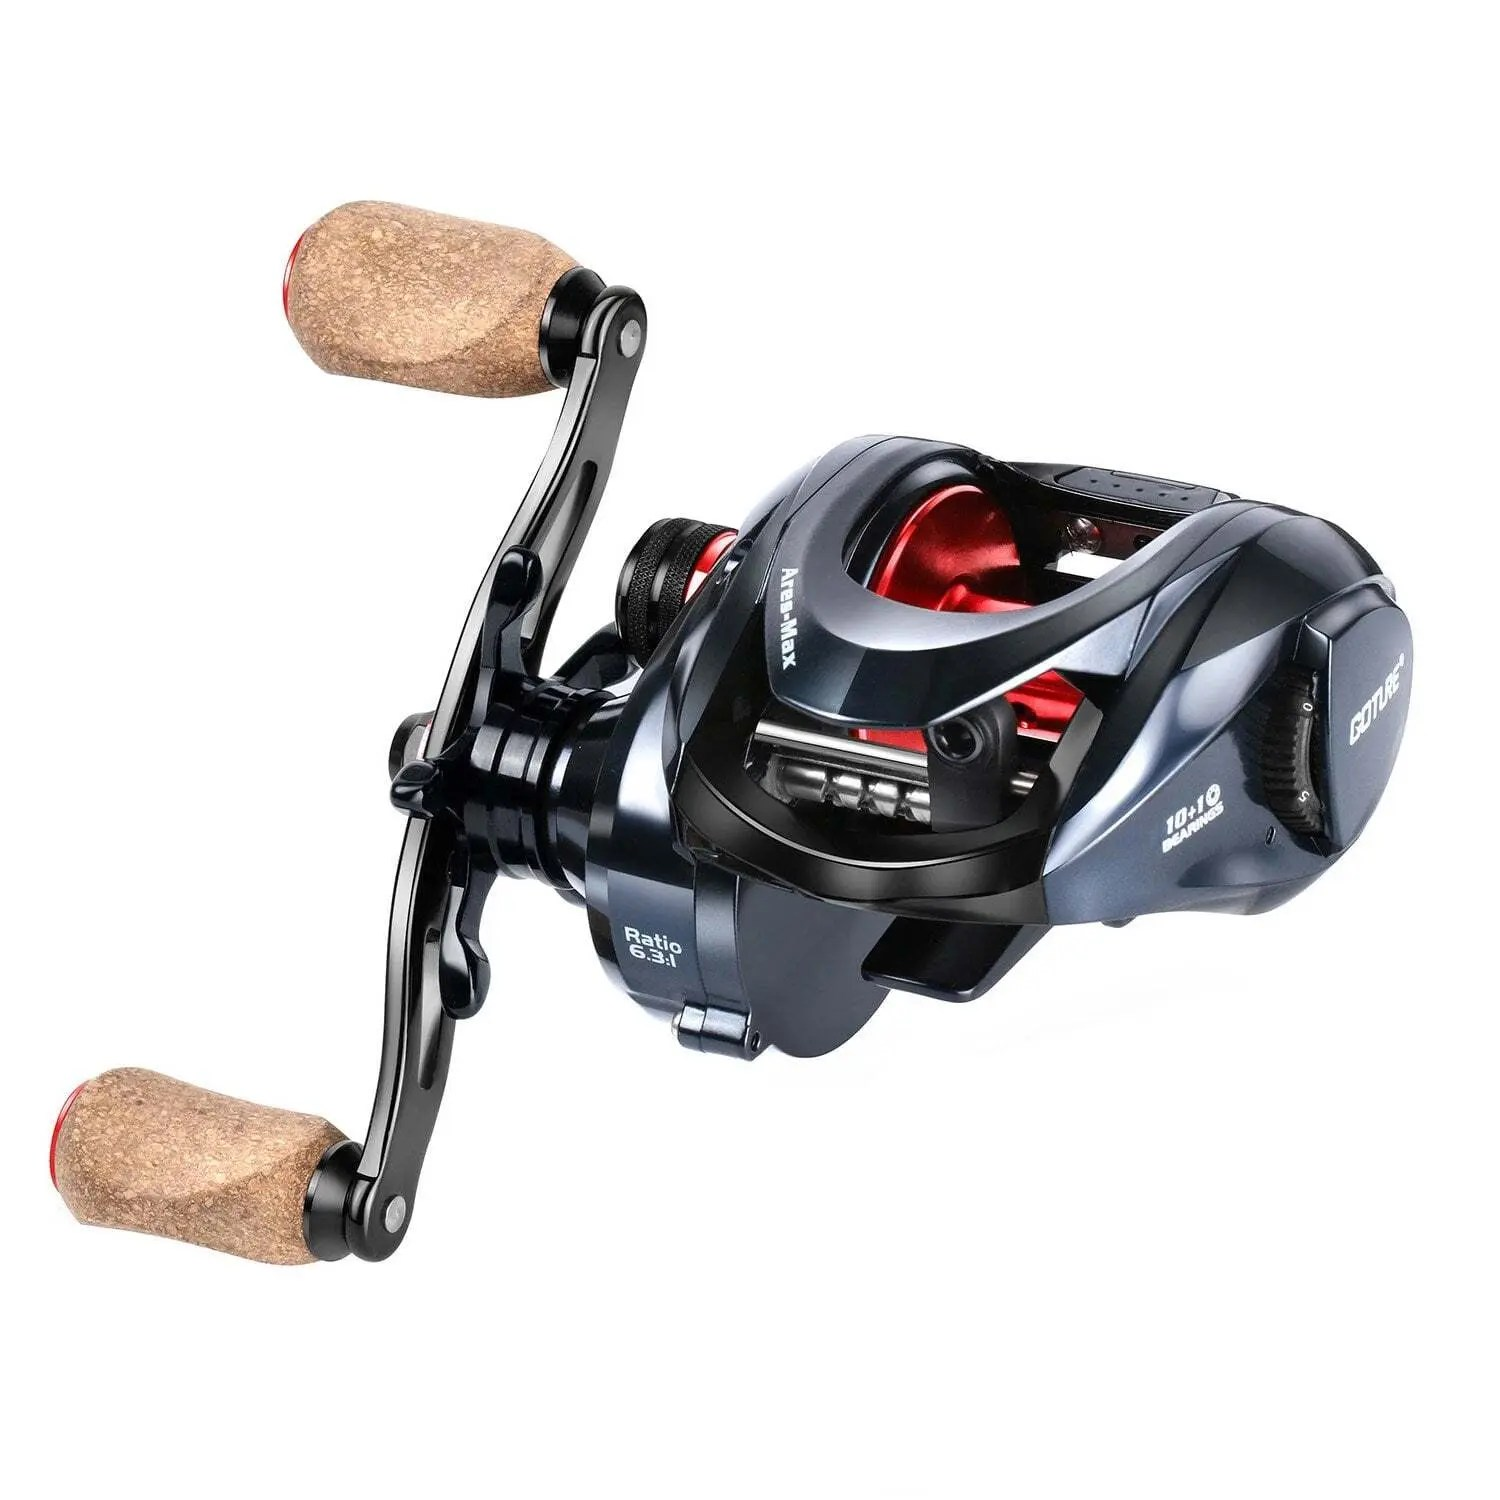 Goture Ares-Max Baitcasting Fishing Reel